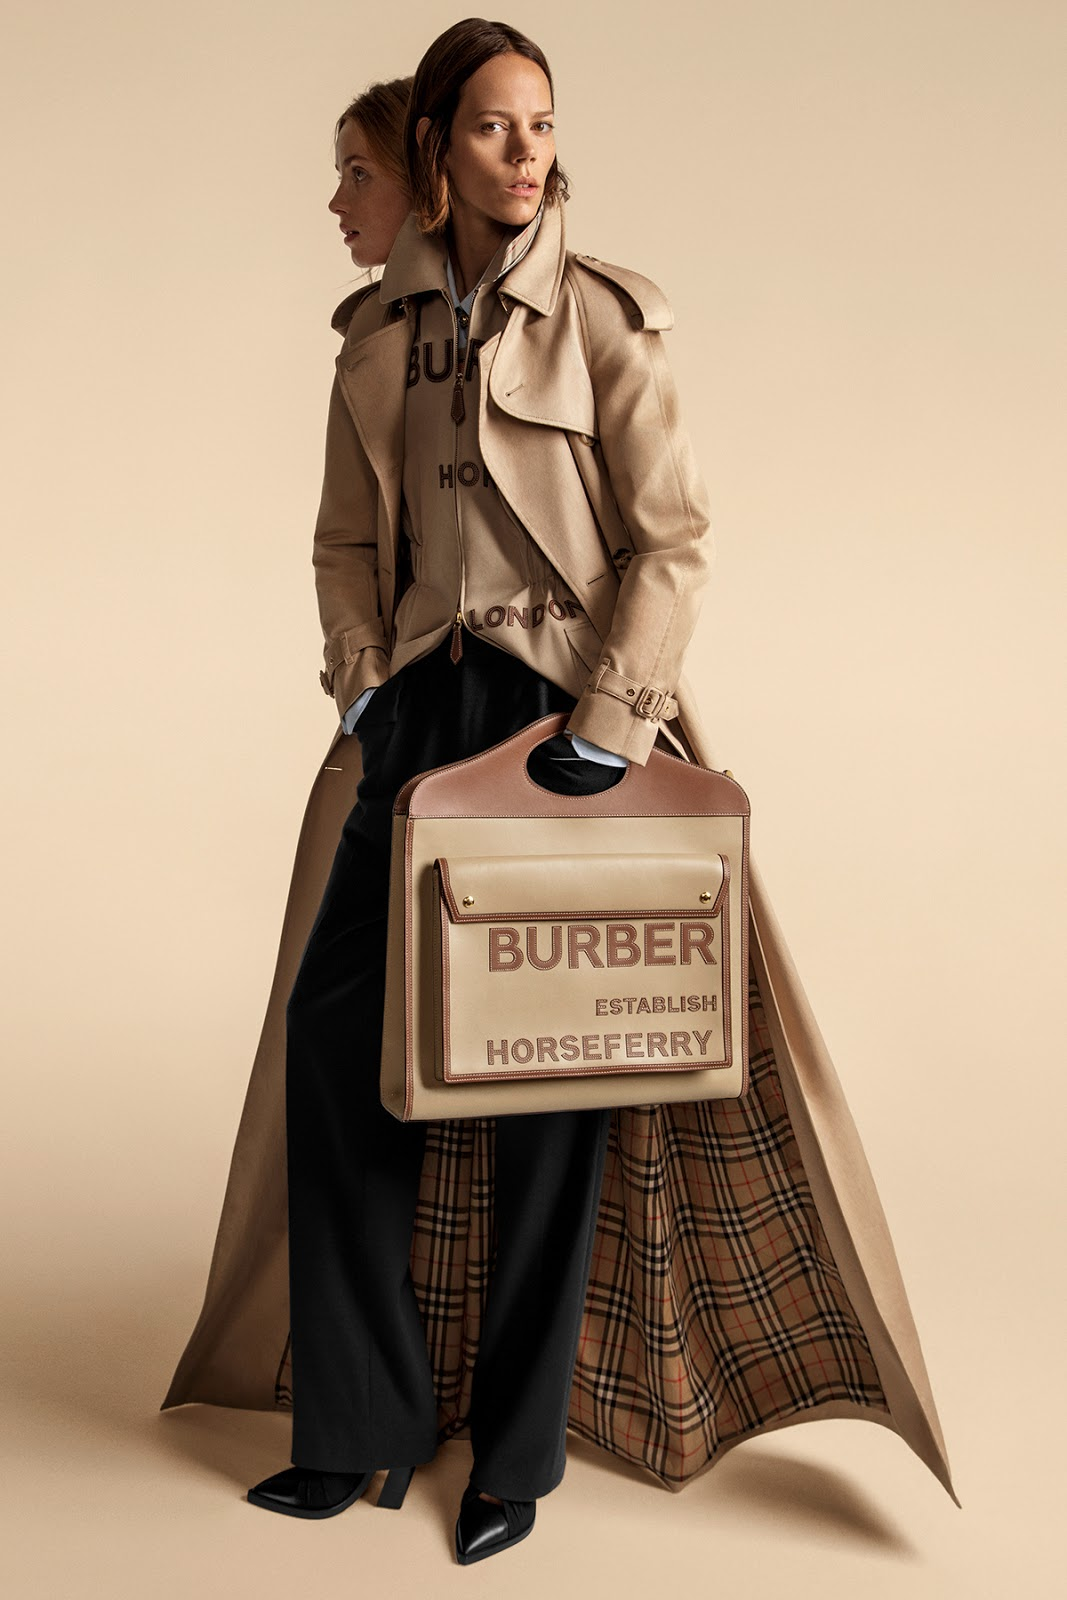 Burberry Spring/Summer 2020 campaign